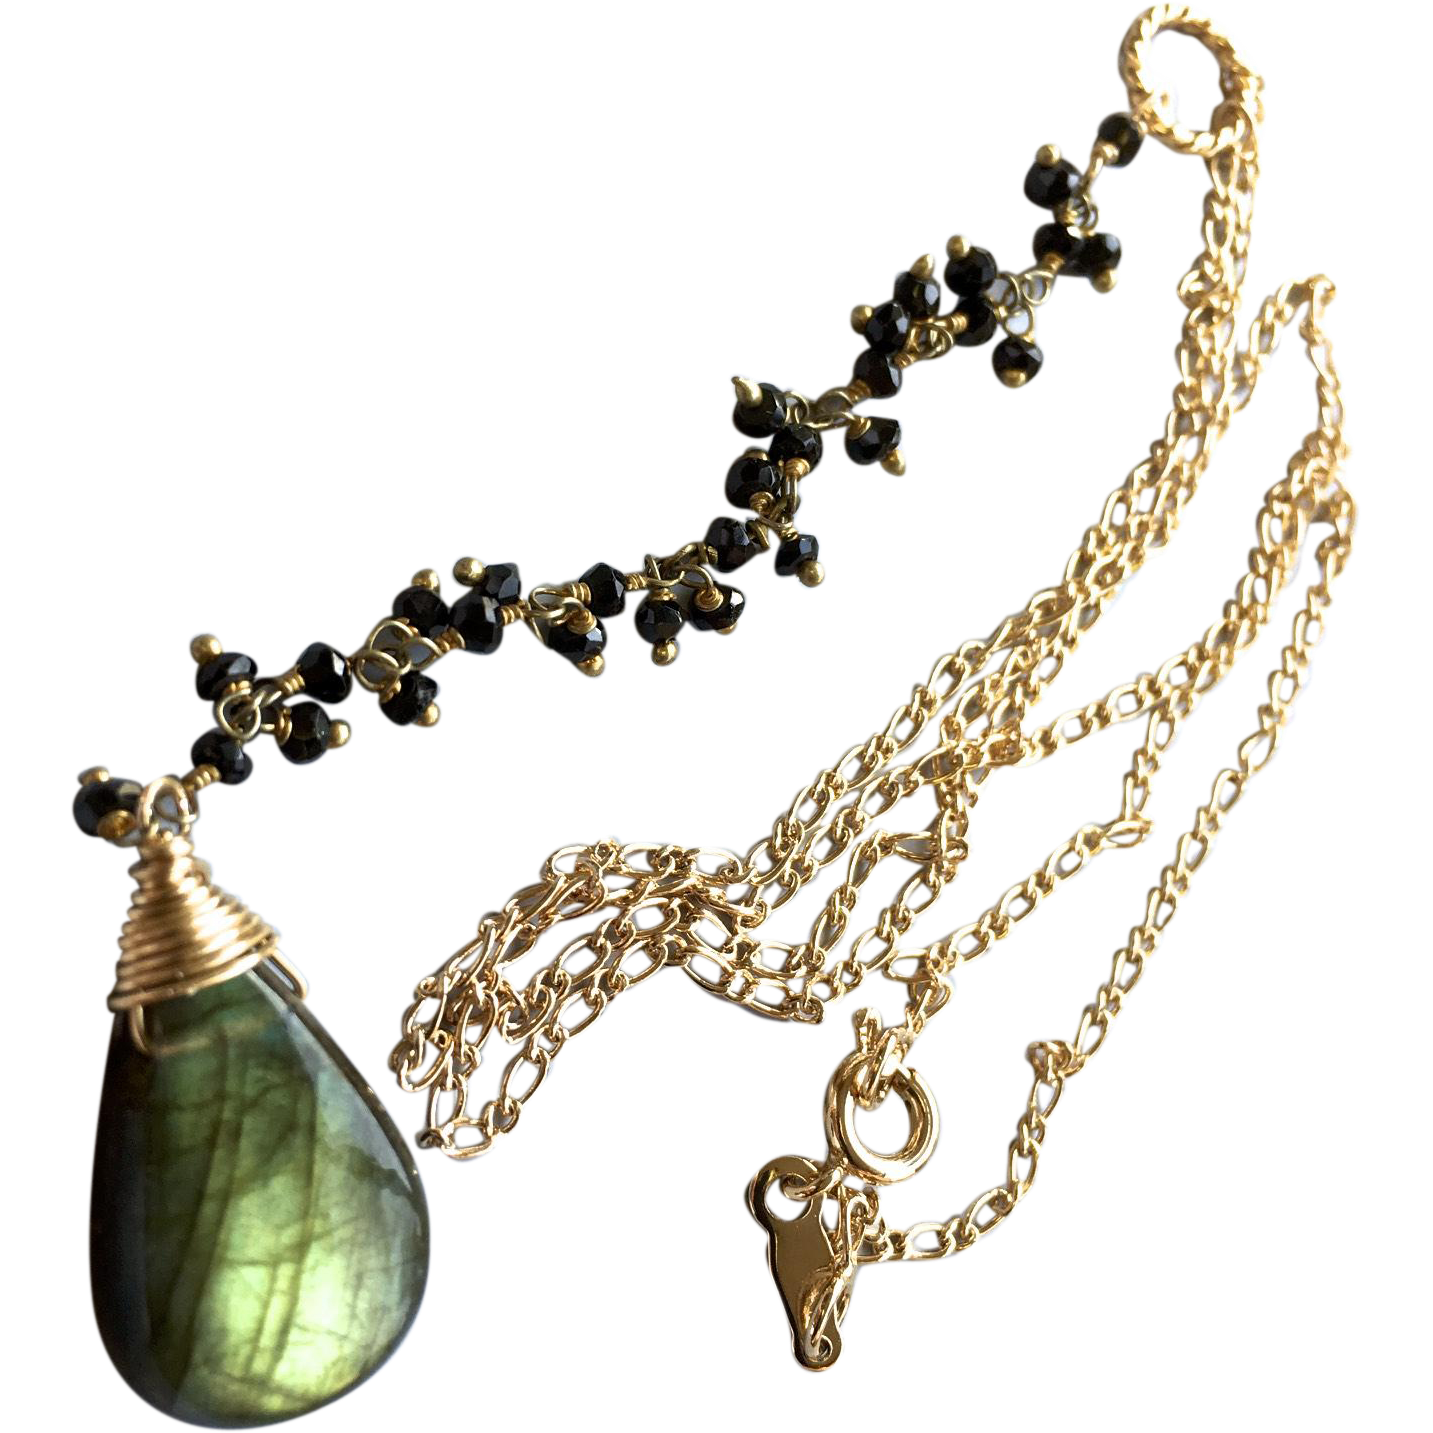 Labradorite Necklace, Black Spinel Y Necklace, Labradorite pendant necklace, Green Lariat Necklace